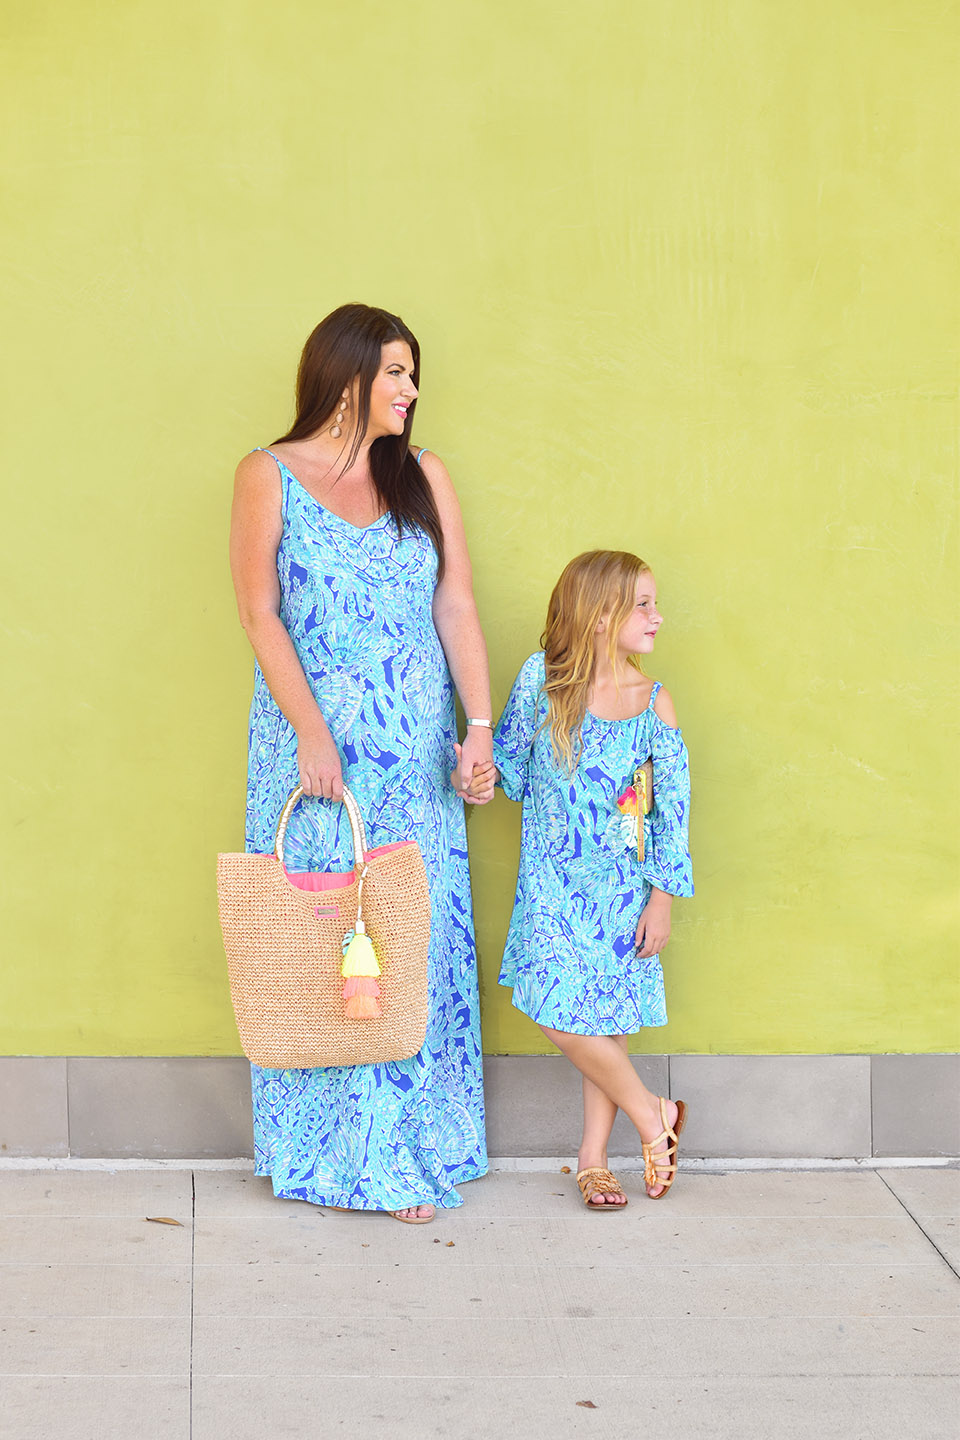 Jami Ray Grand Boulevard Lilly Pulitzer Allair Dress Mommy and Me